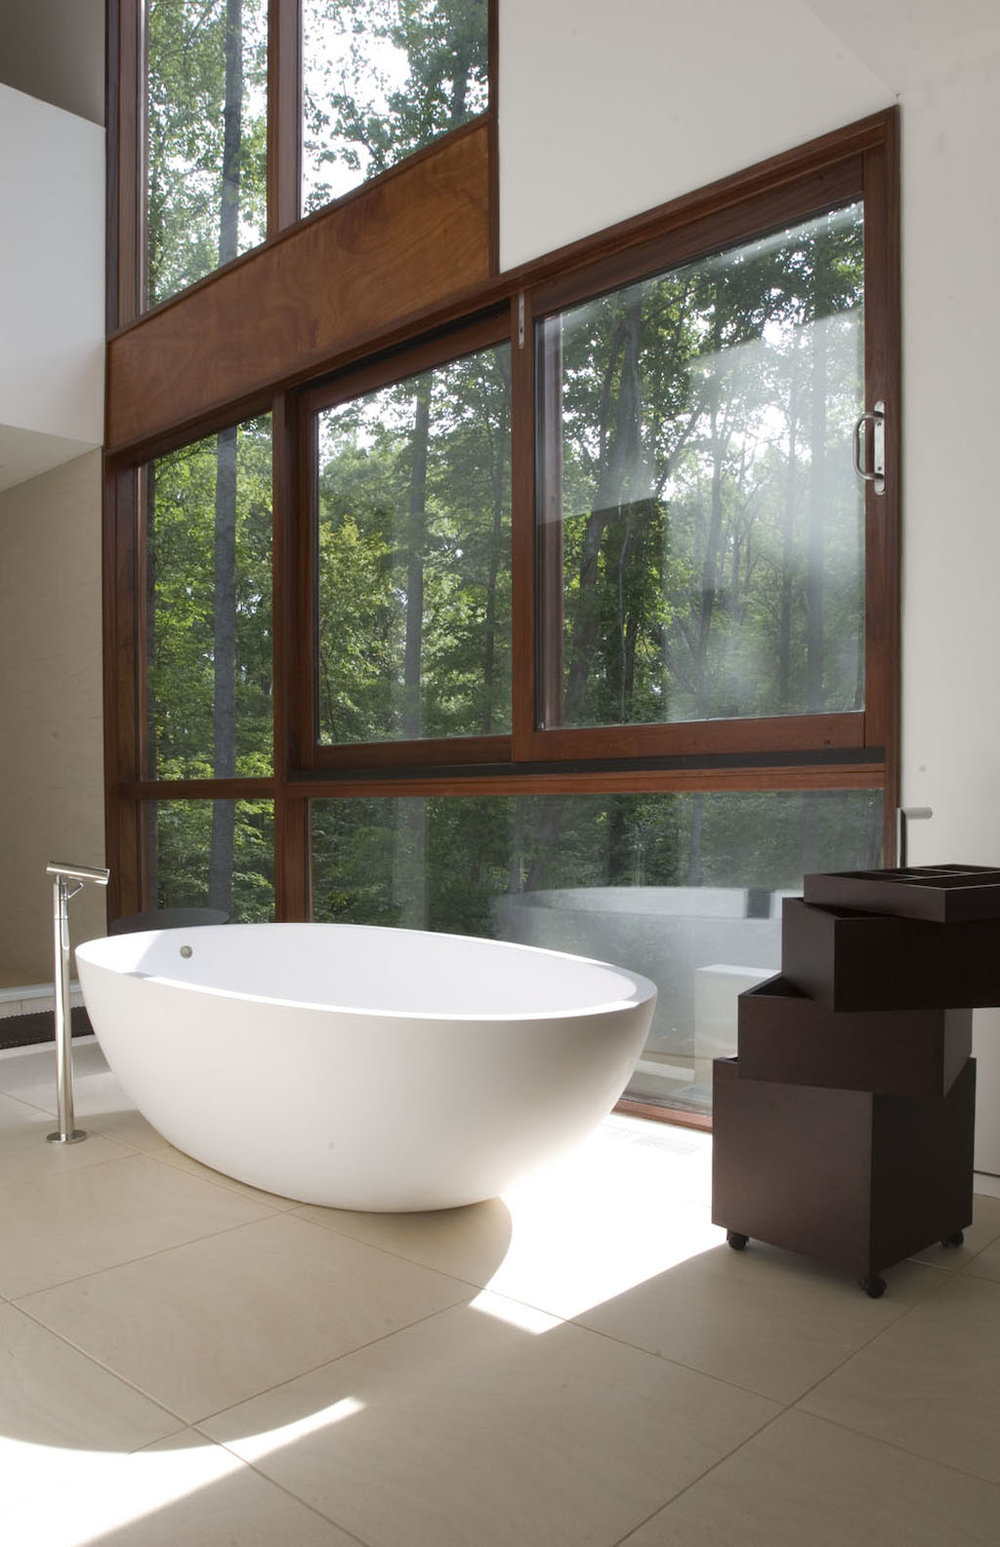 turkel_modern_design_prefab_home_redhill_hillsborough_bathroom.jpg